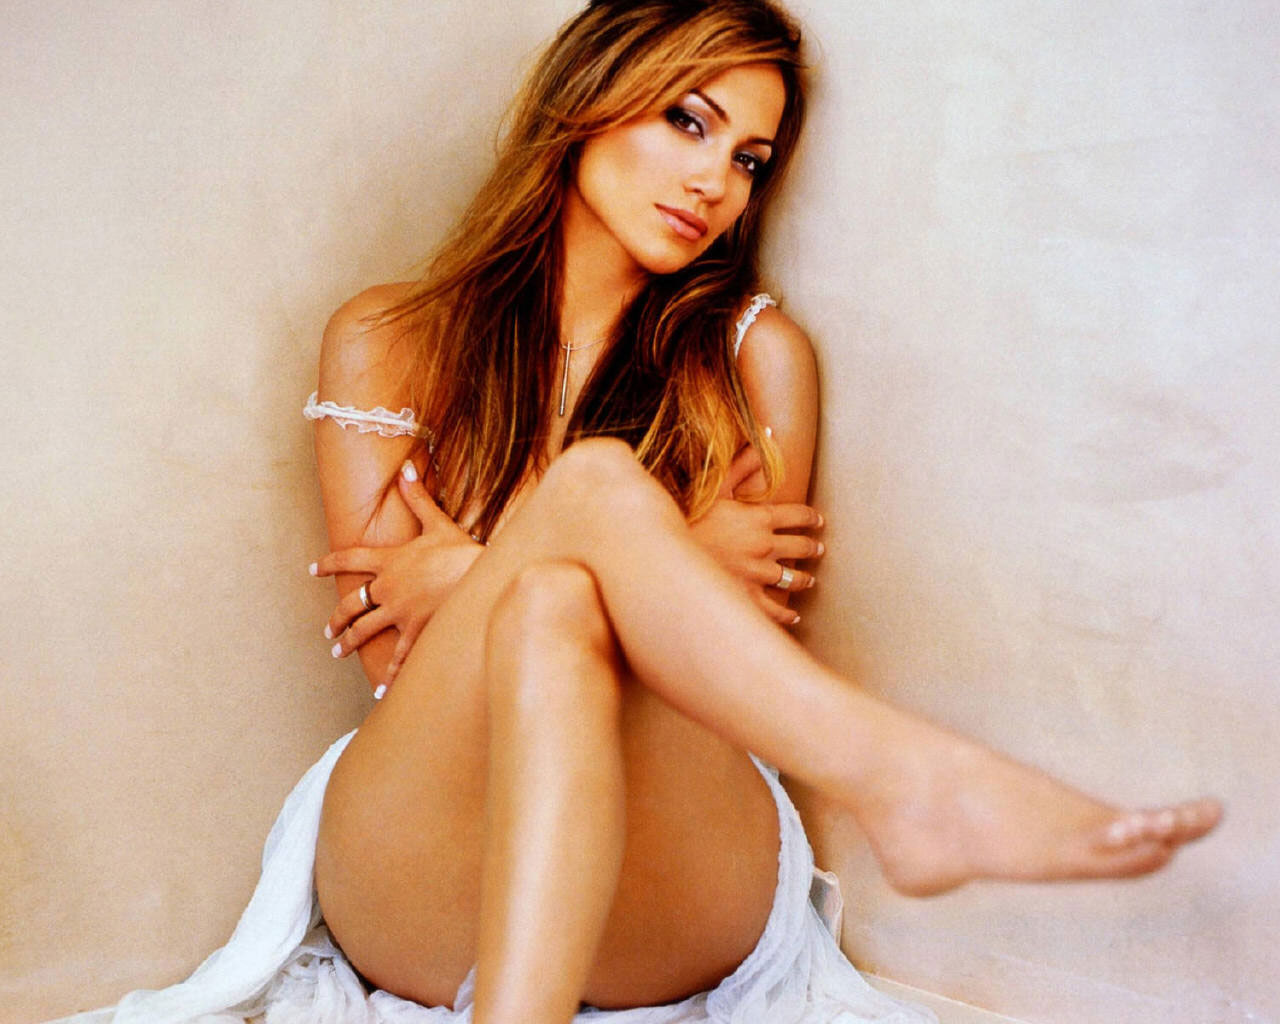 blogspotcom jennifer lopez - photo #8